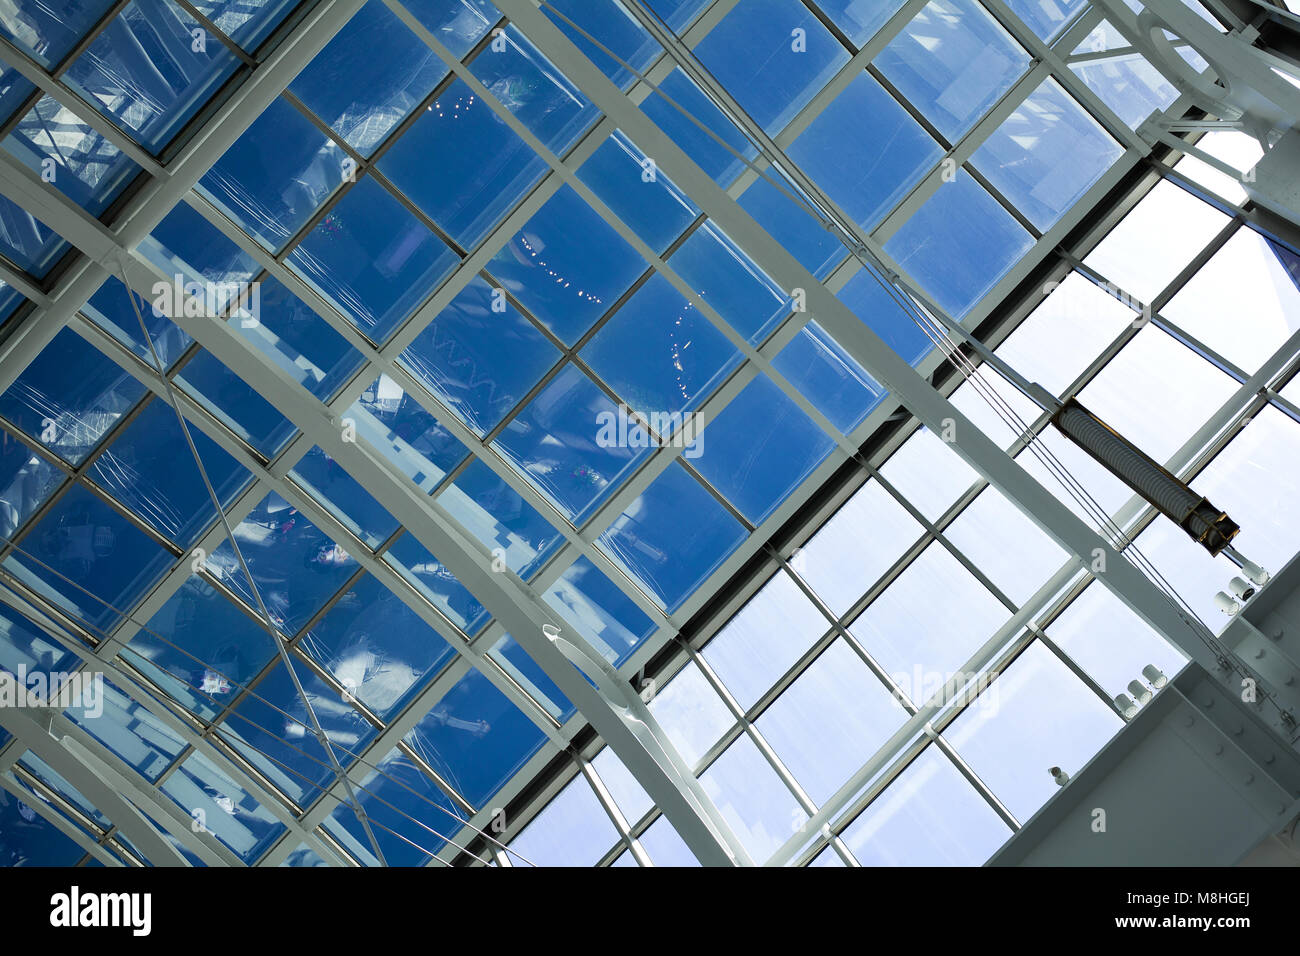 Close-up of glass roof top of modern skyscraper showing reflections from entry level - Stock Image